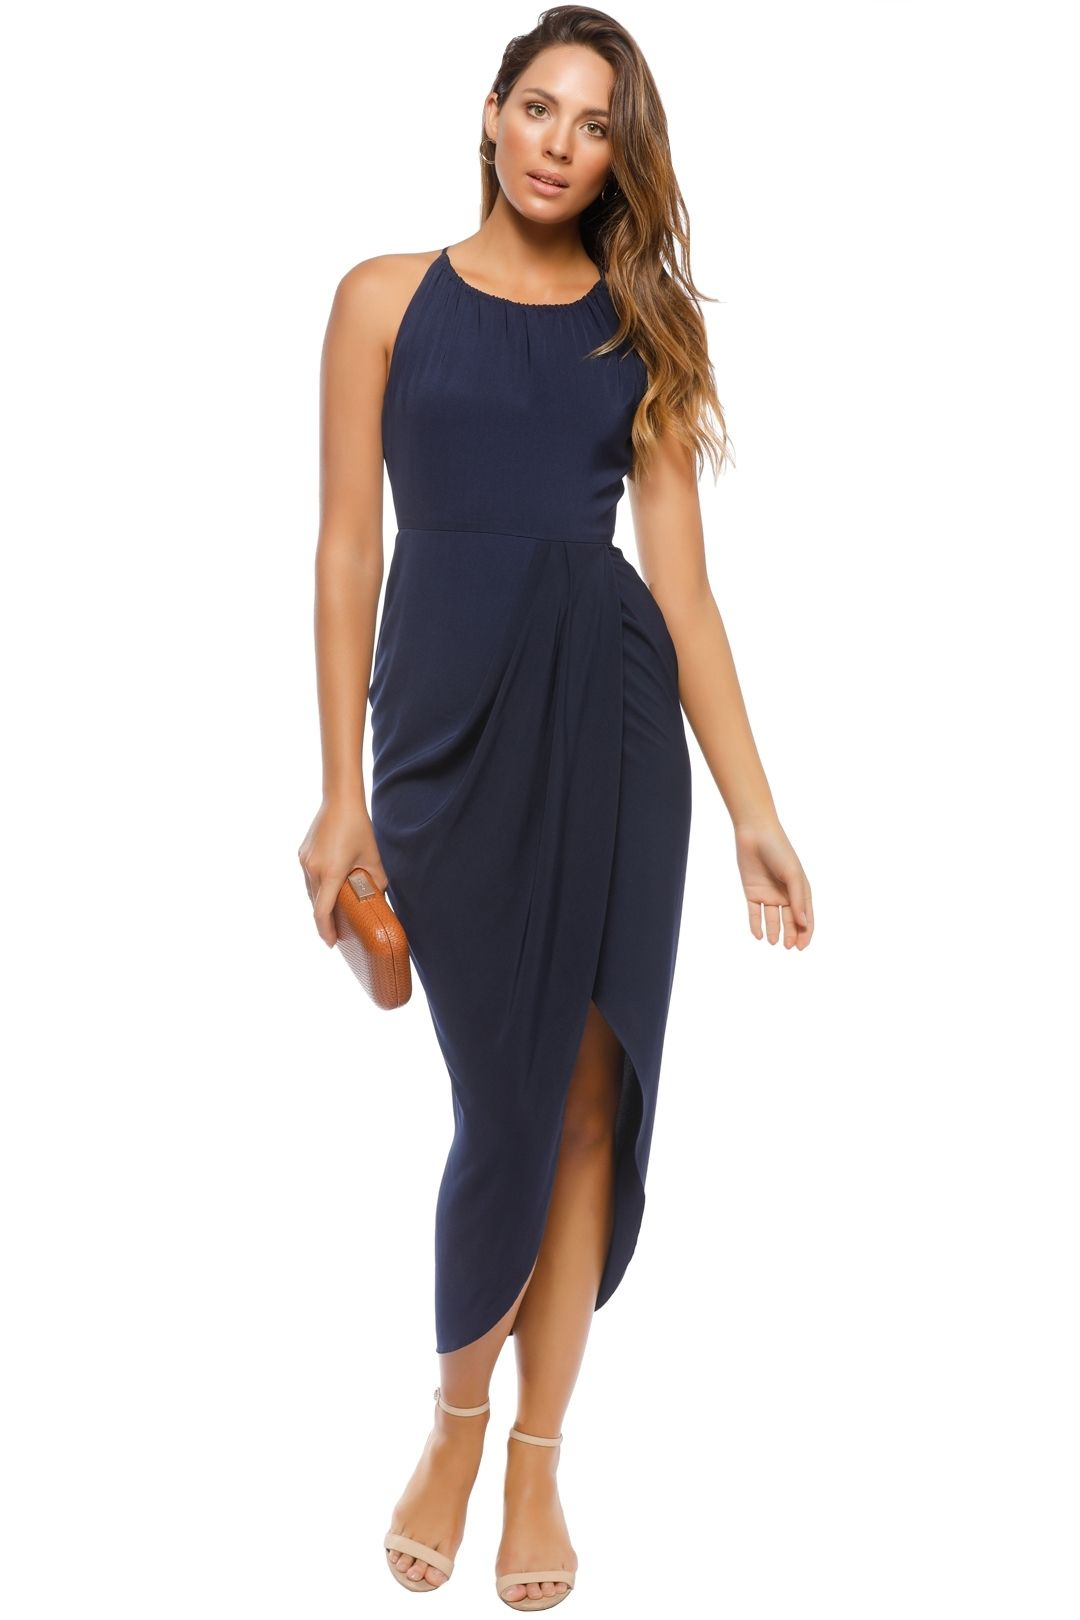 Shona Joy - Navy Core High Neck Ruched - Navy - Front